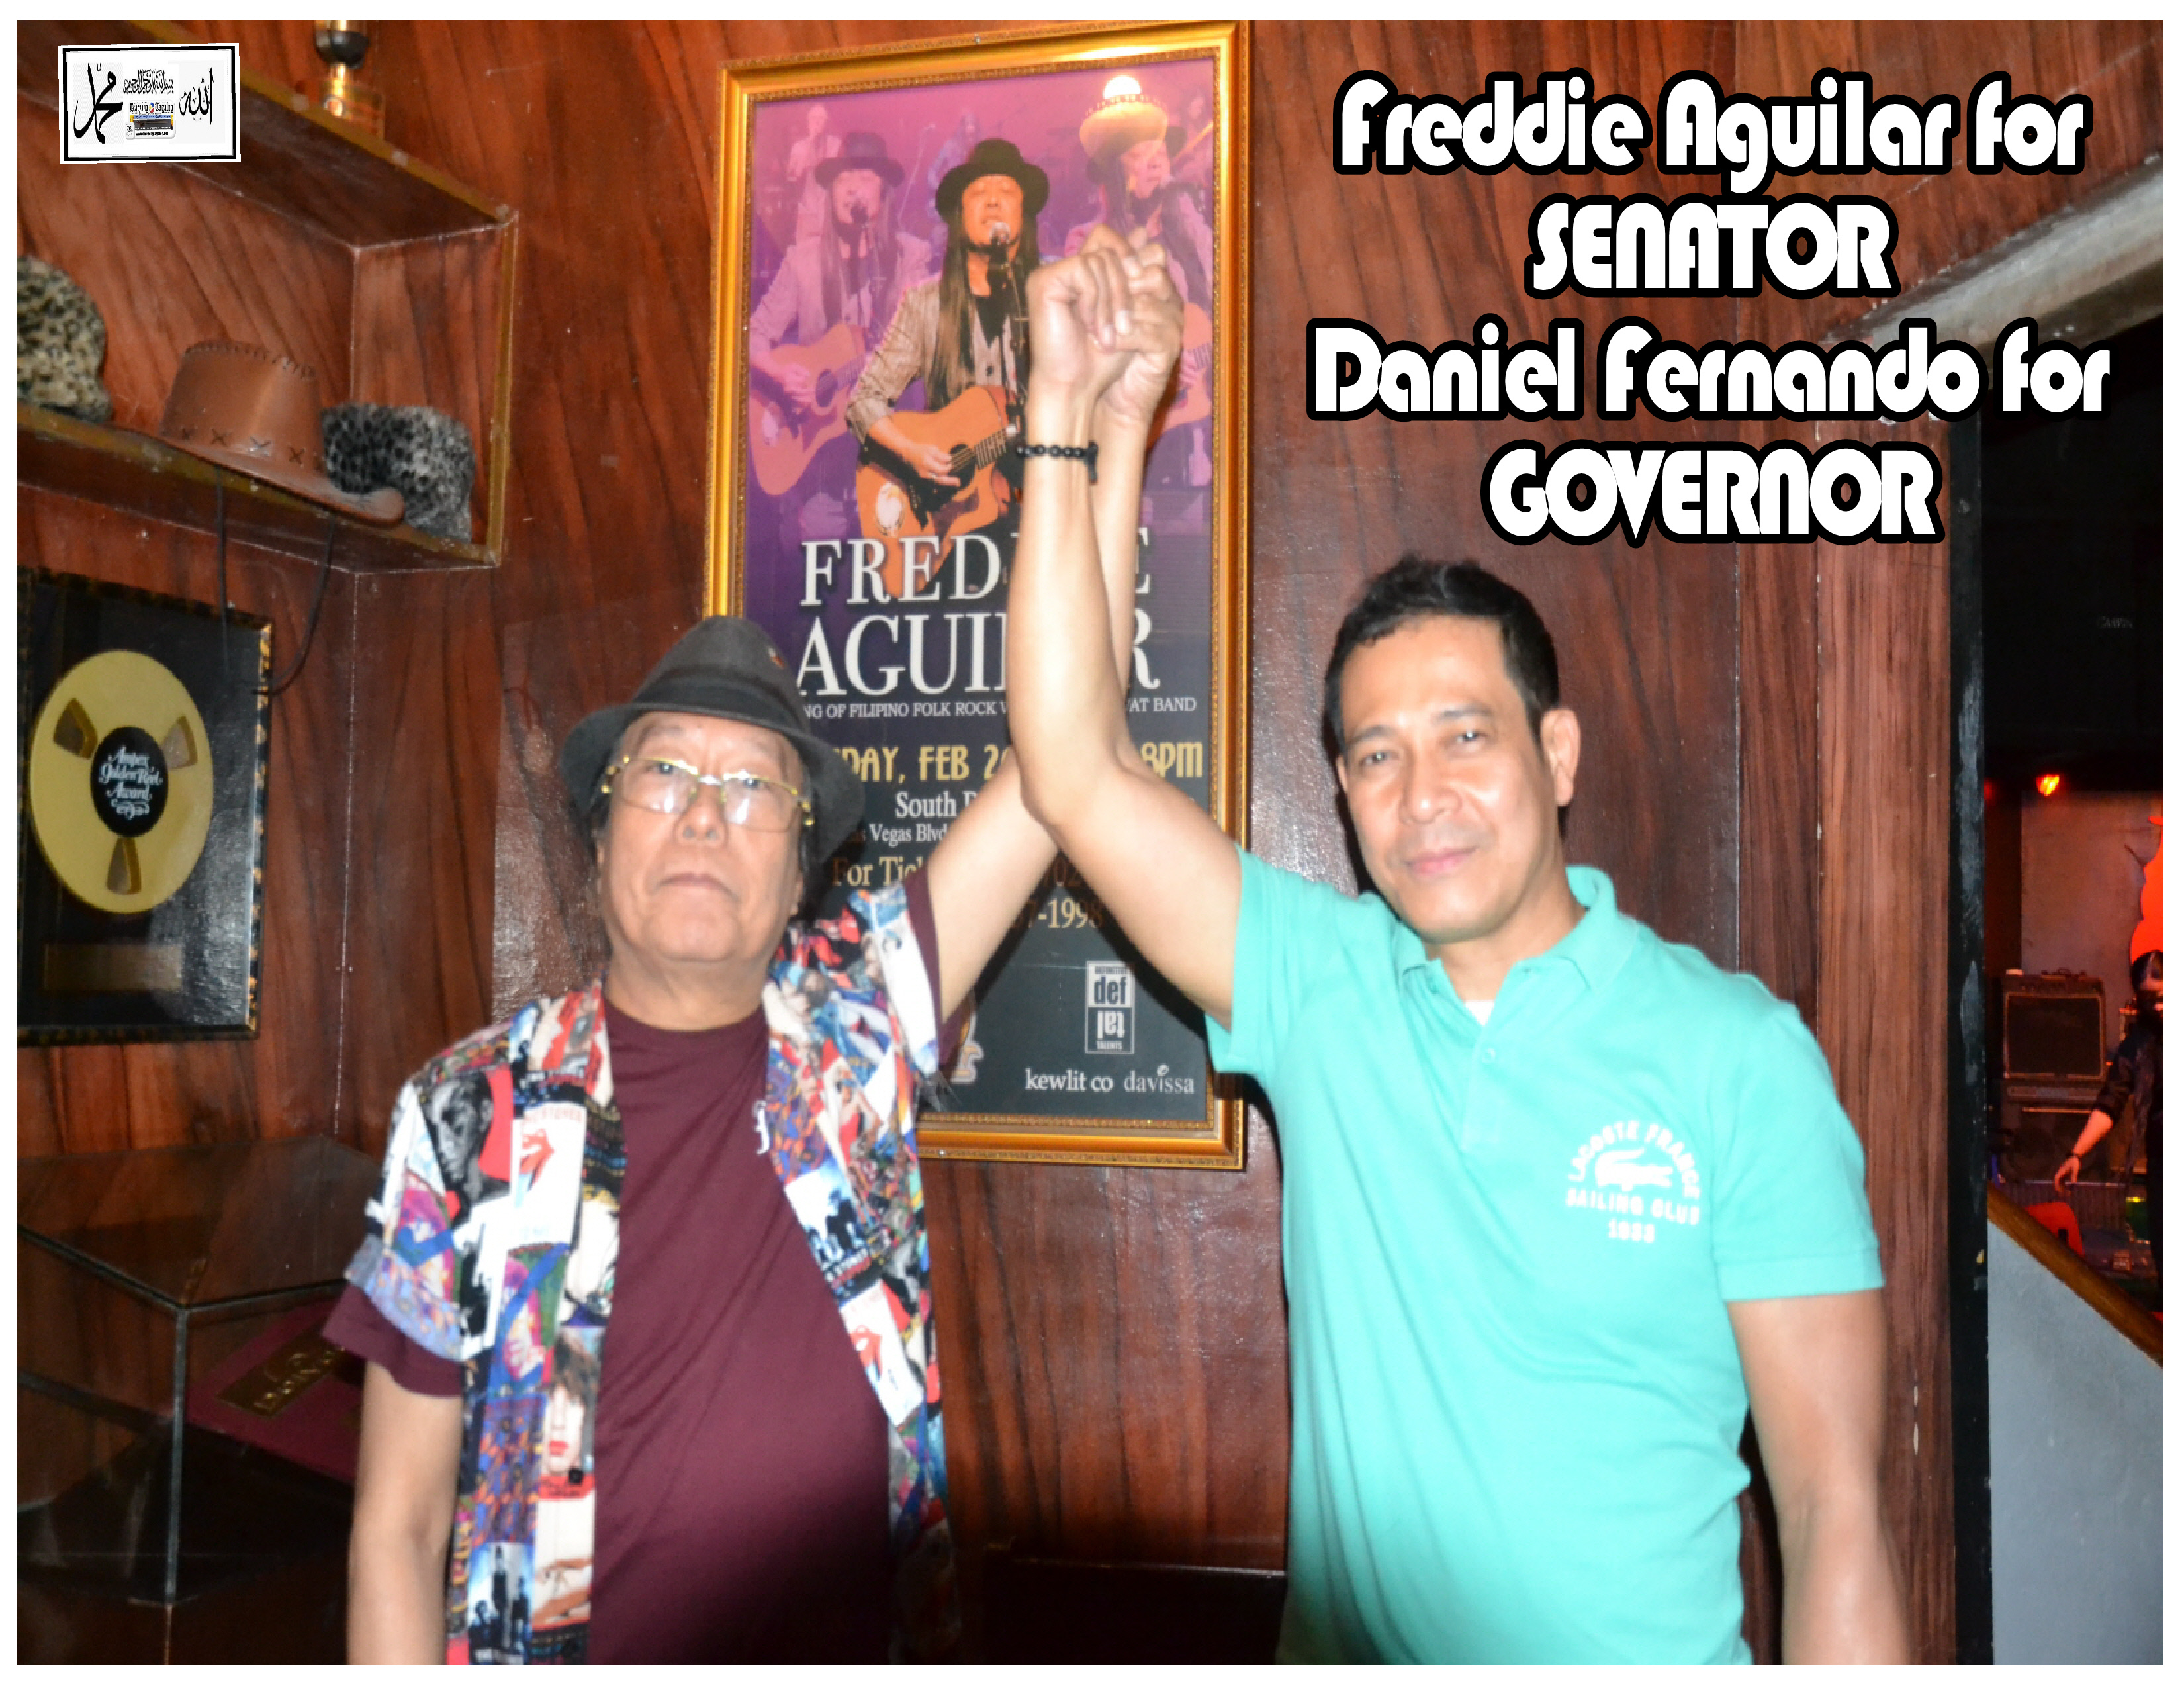 aguilar for senator fernando for governor